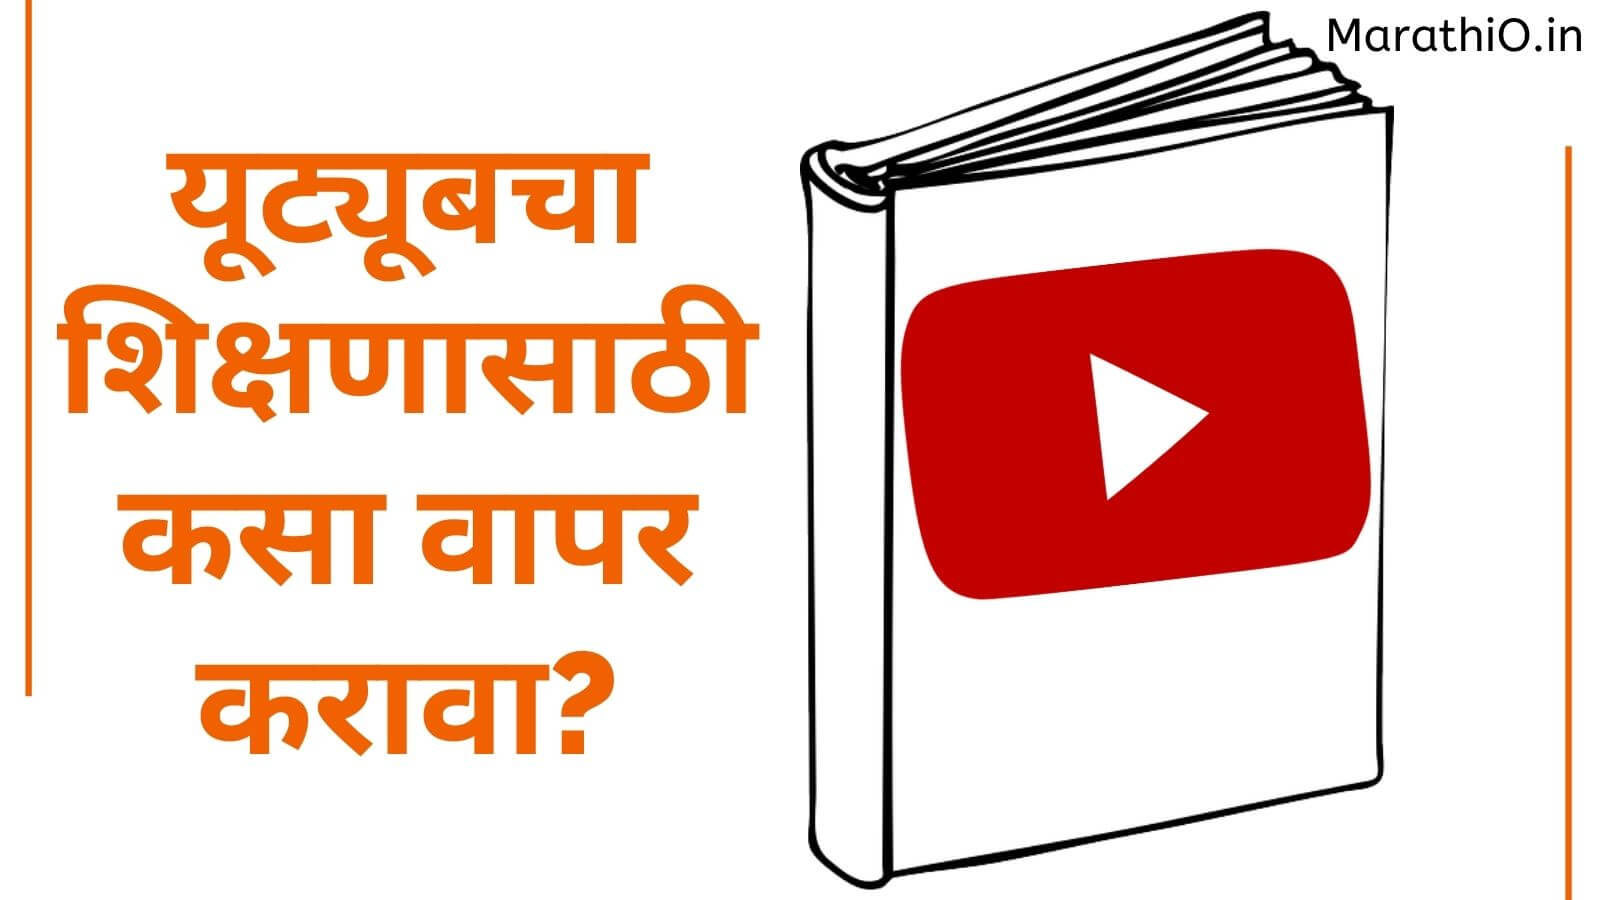 How To Use YouTube For Education In Marathi